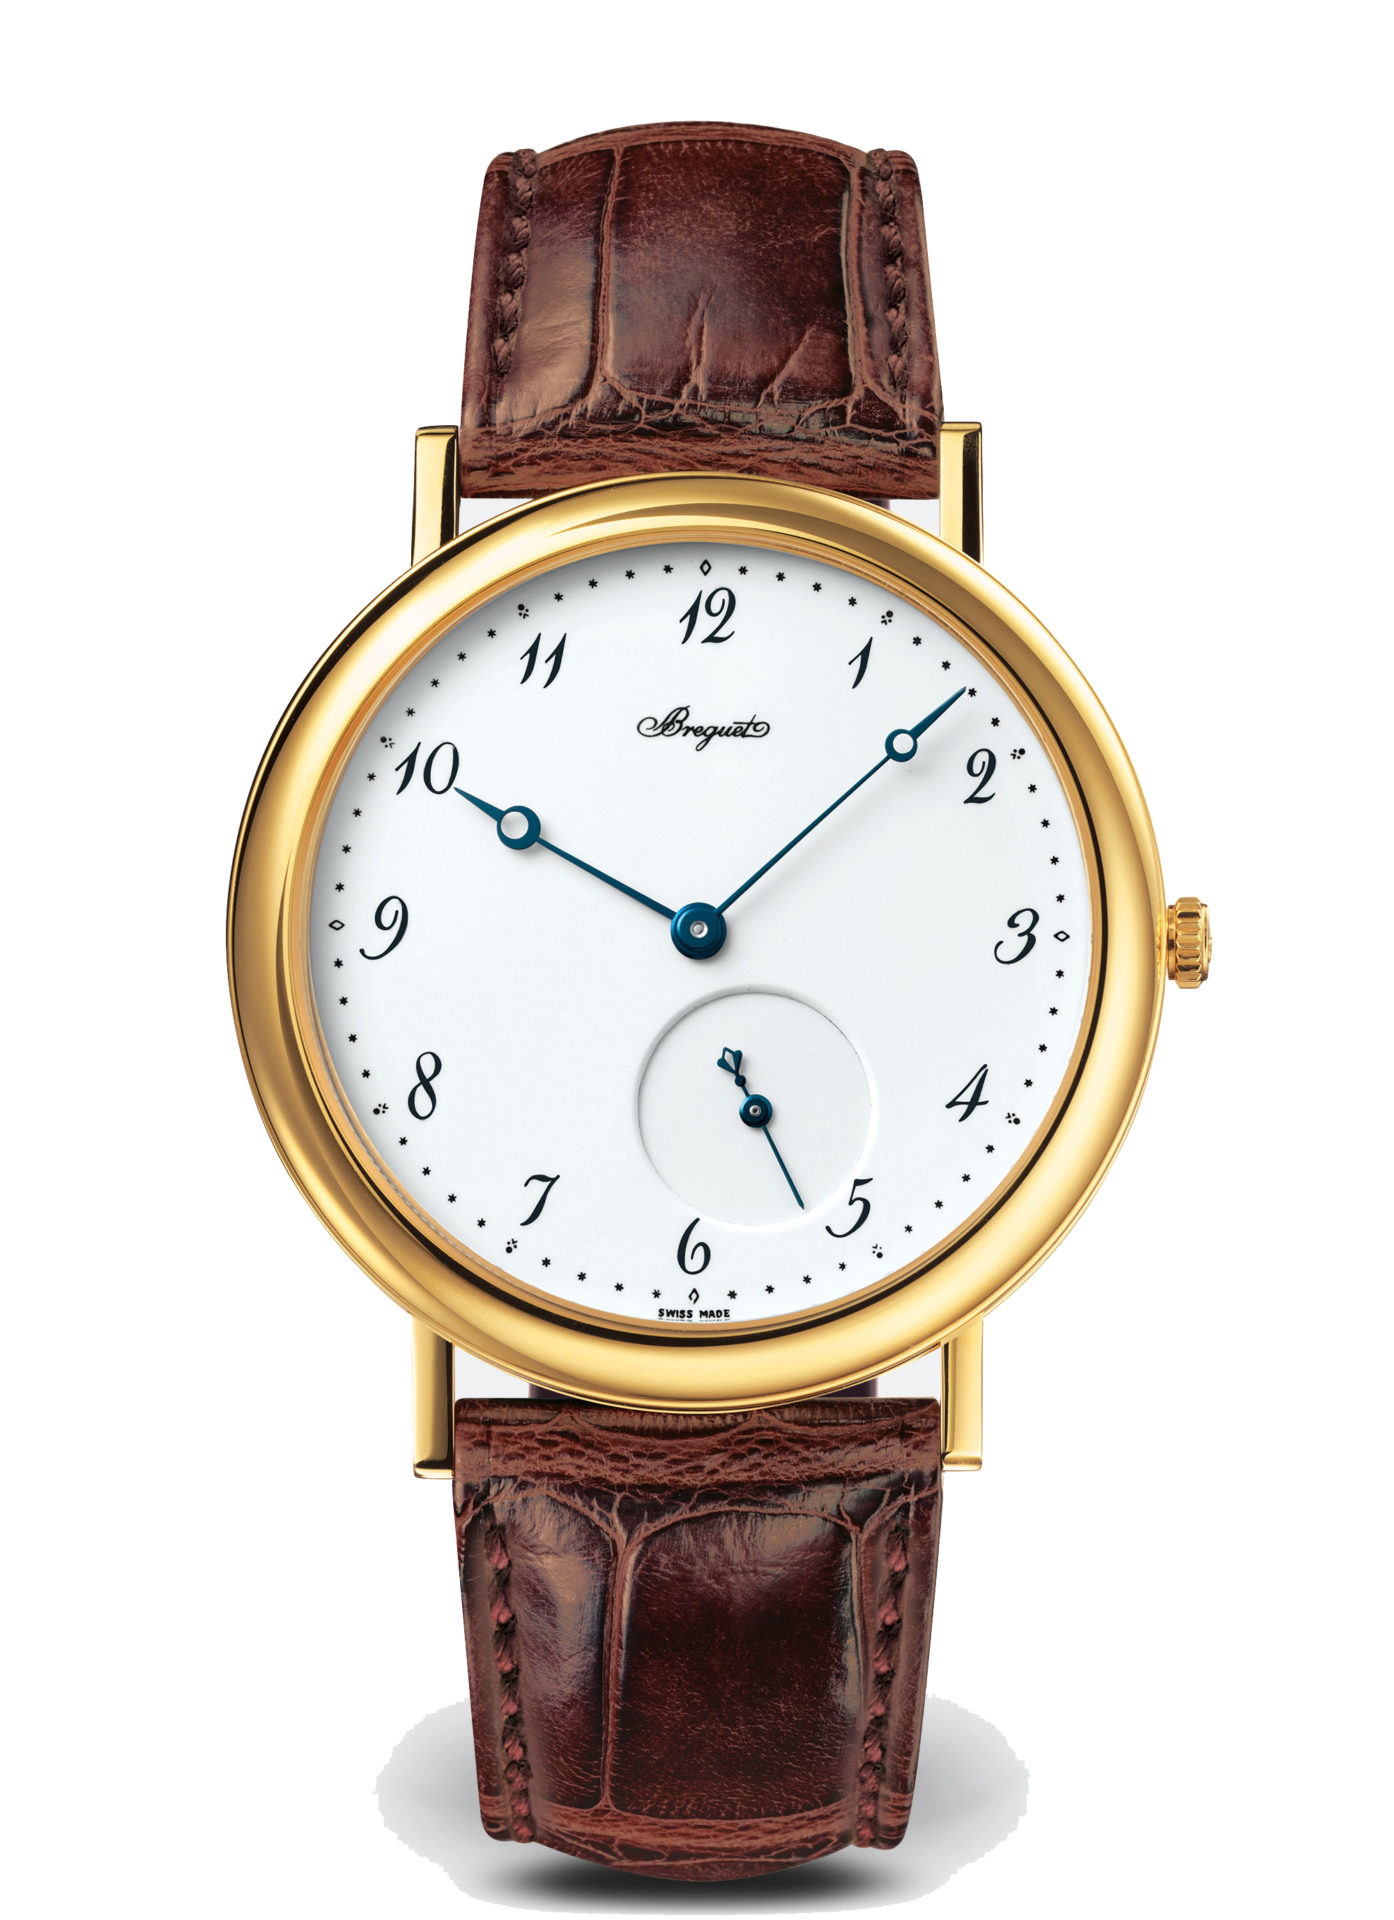 Breguet-Classique-5140-Hall-of-Time-5140ba-29-9w6-0 copie